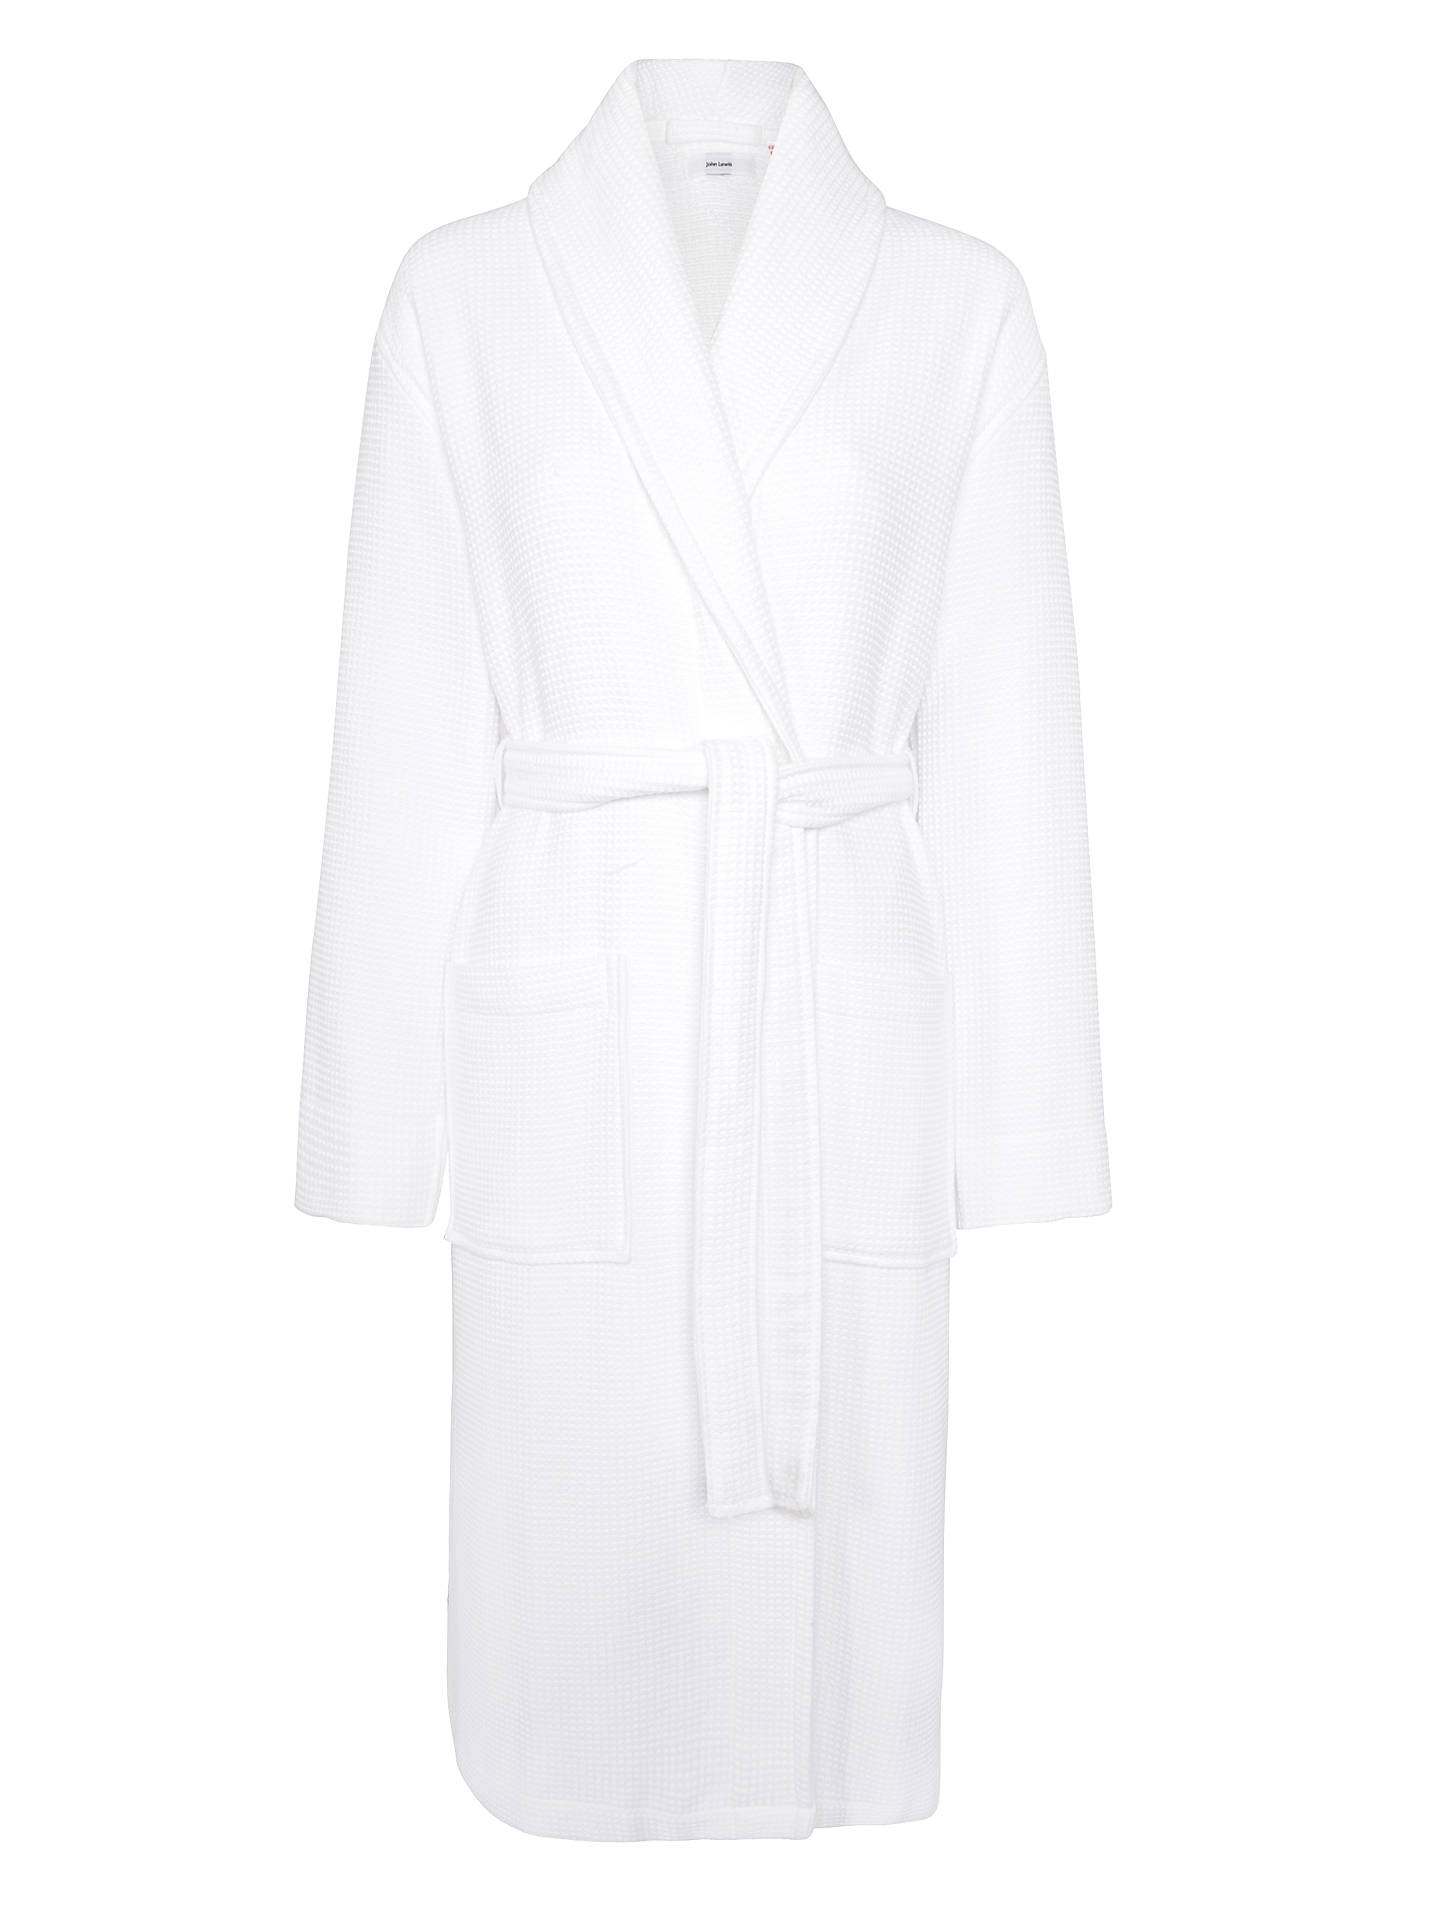 Buy John Lewis & Partners Spa Waffle Robe, White, S Online at johnlewis.com